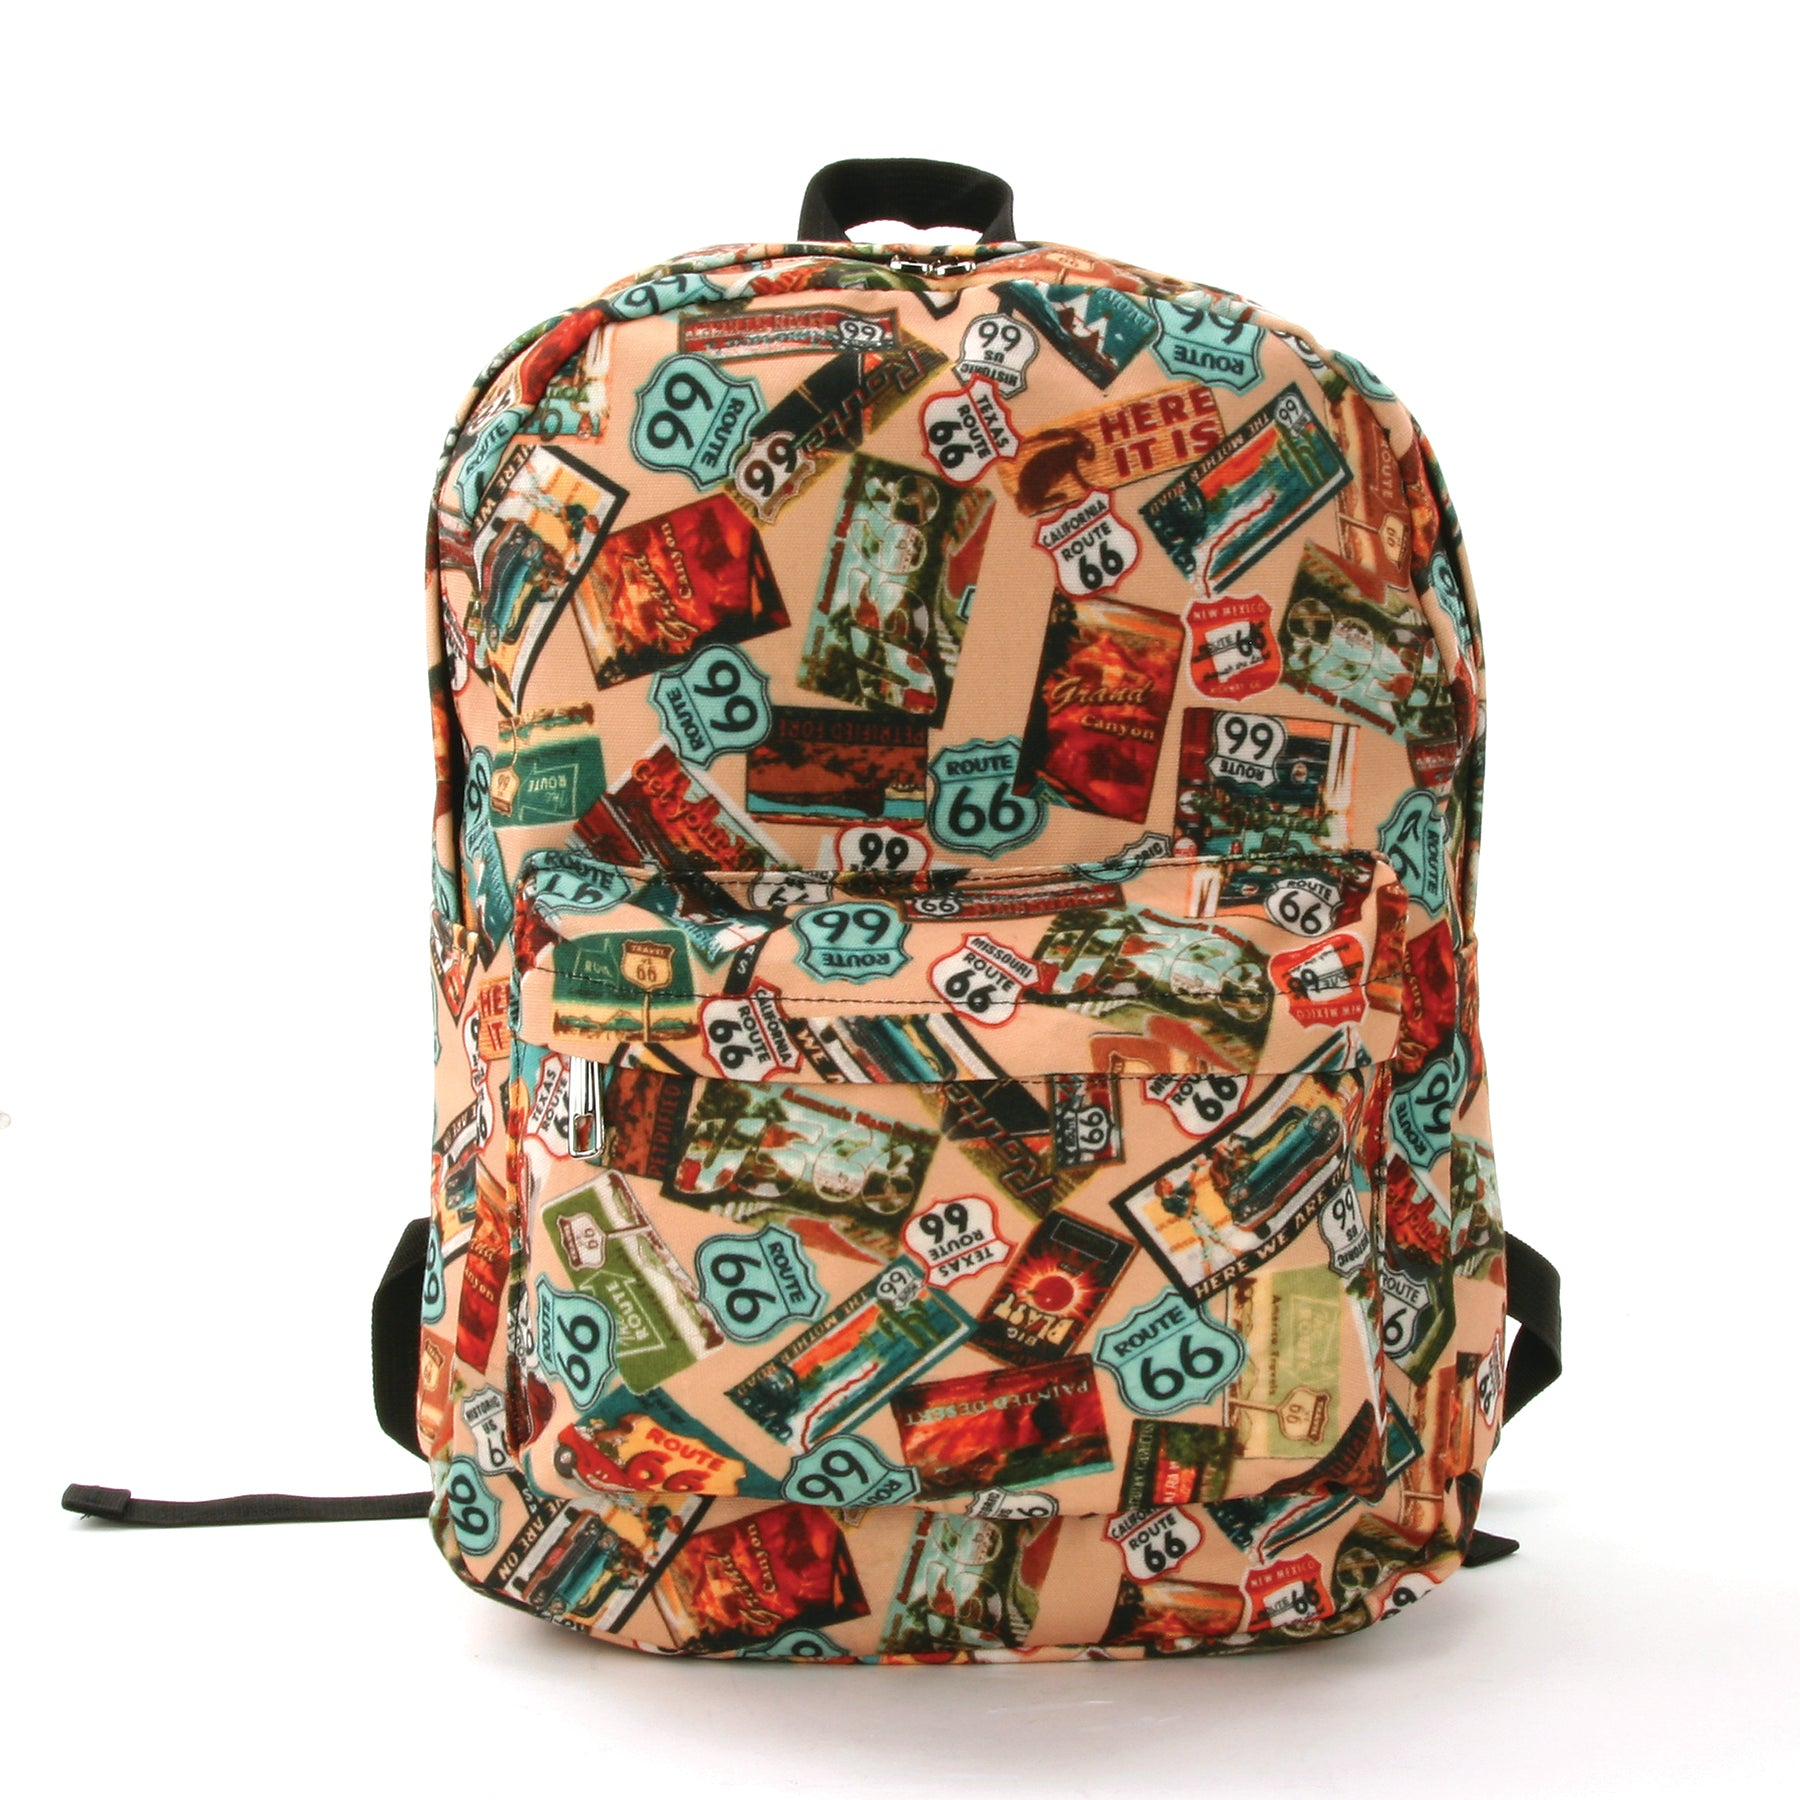 Route 66 Backpack in Polyester Material front view